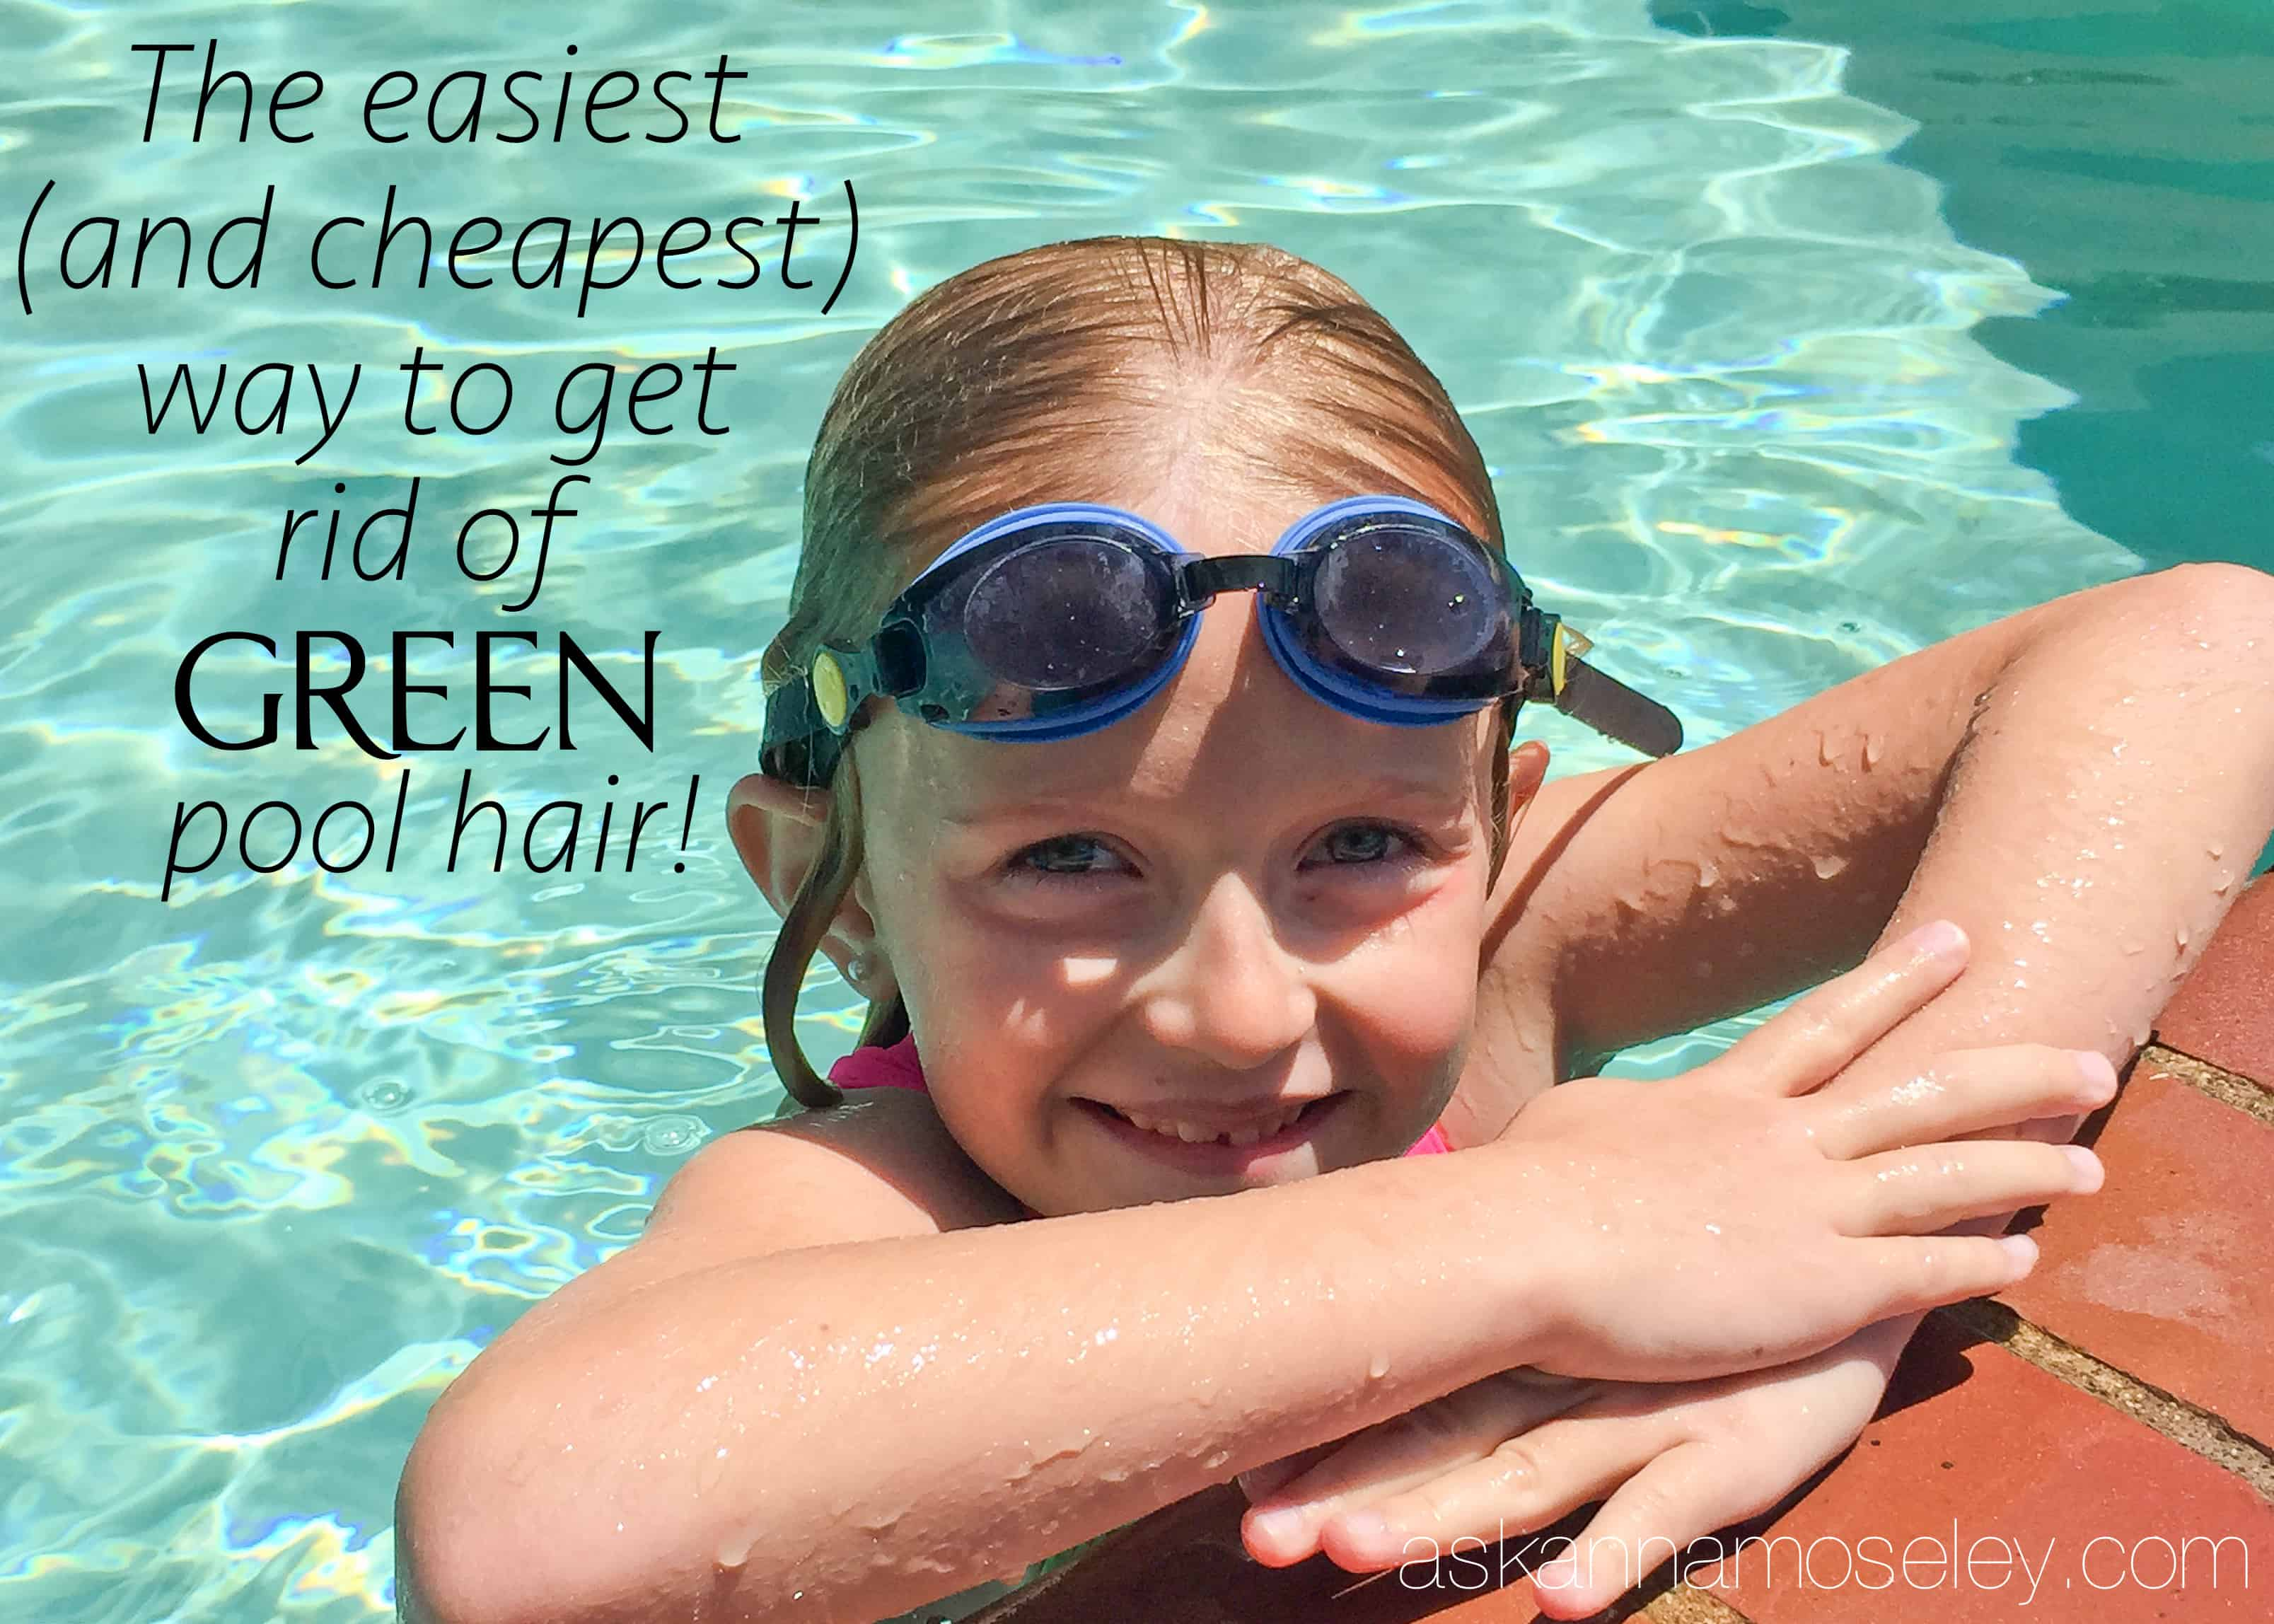 The easiest, and cheapest, way to get rid of green pool hair   Ask Anna